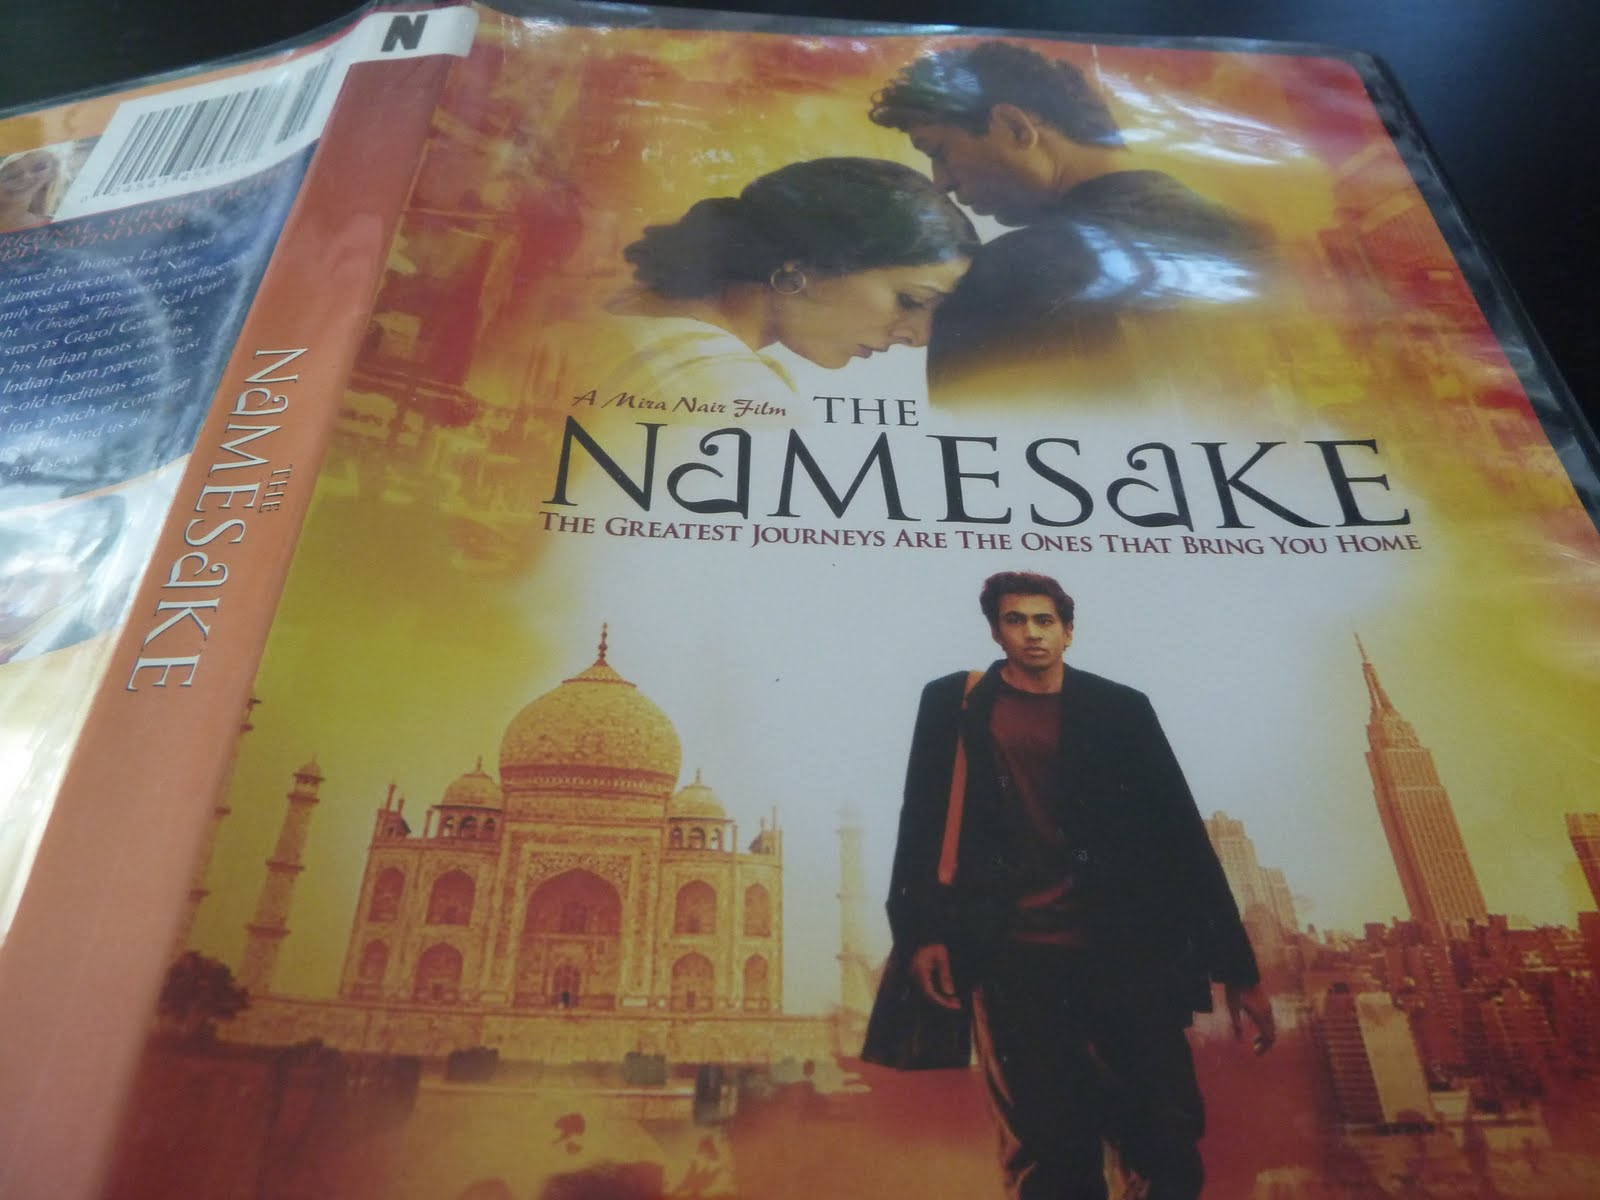 the namesake the greatest journeys are A great book combines enrichment with enchantment it awakens our imagination and enlarges our humanity it can  journeys alone to the us shortly after marrying ashoke  she published the namesake, a novel, and followed that in 2008 with a second collection of short stories.